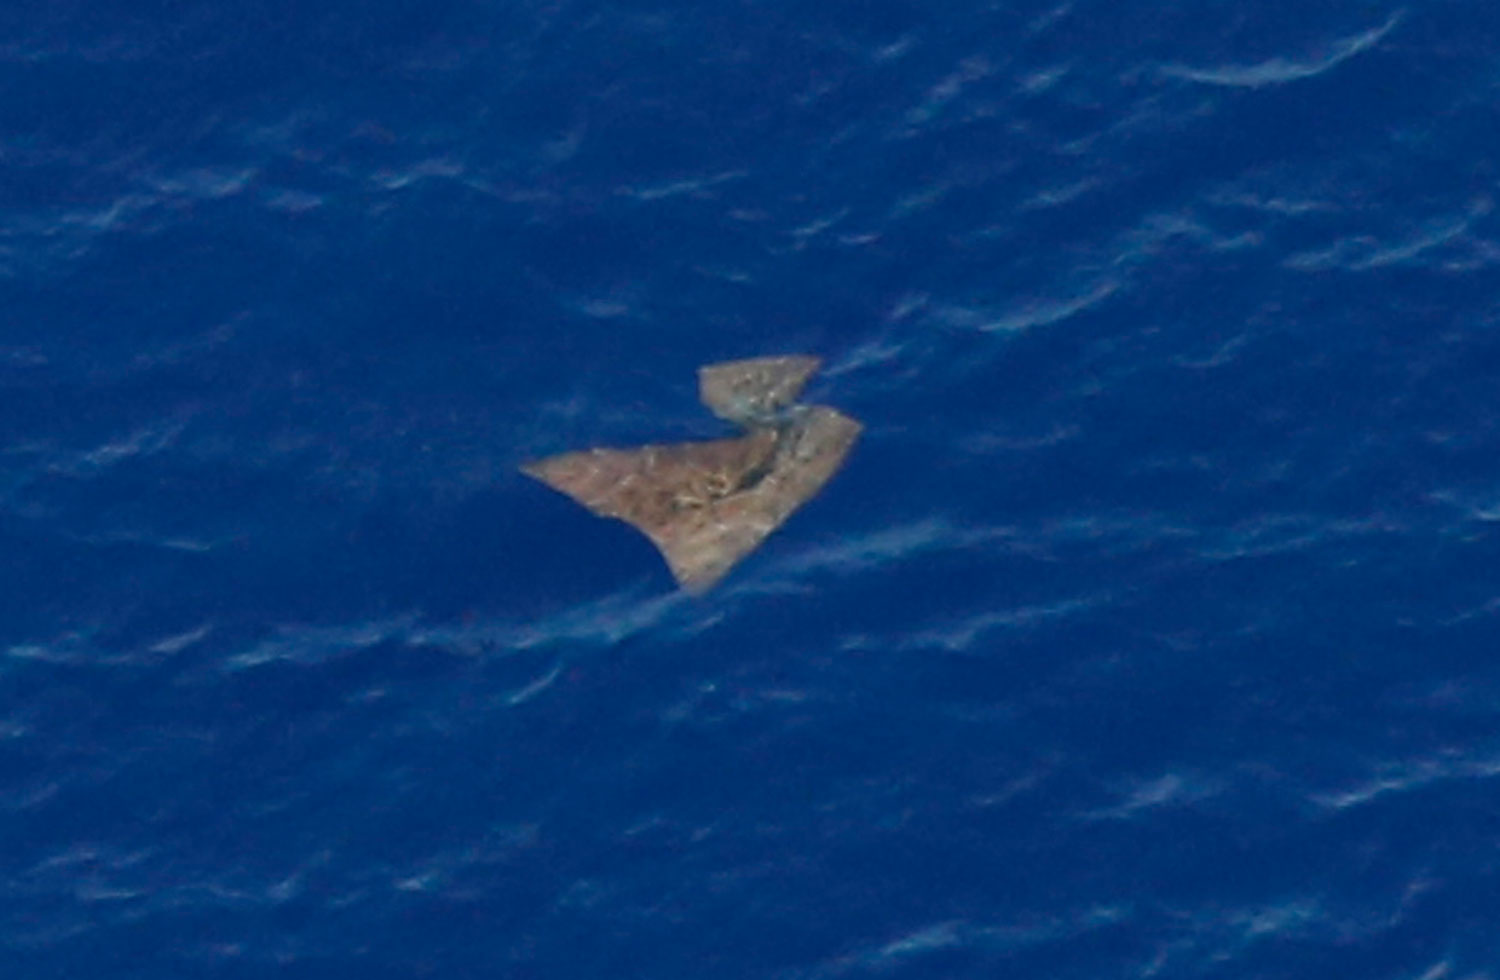 An object floats in the southern Indian Ocean in this picture taken from a Royal New Zealand Air Force P-3K2 Orion aircraft searching for missing Malaysian Airlines flight MH370, March 29, 2014.